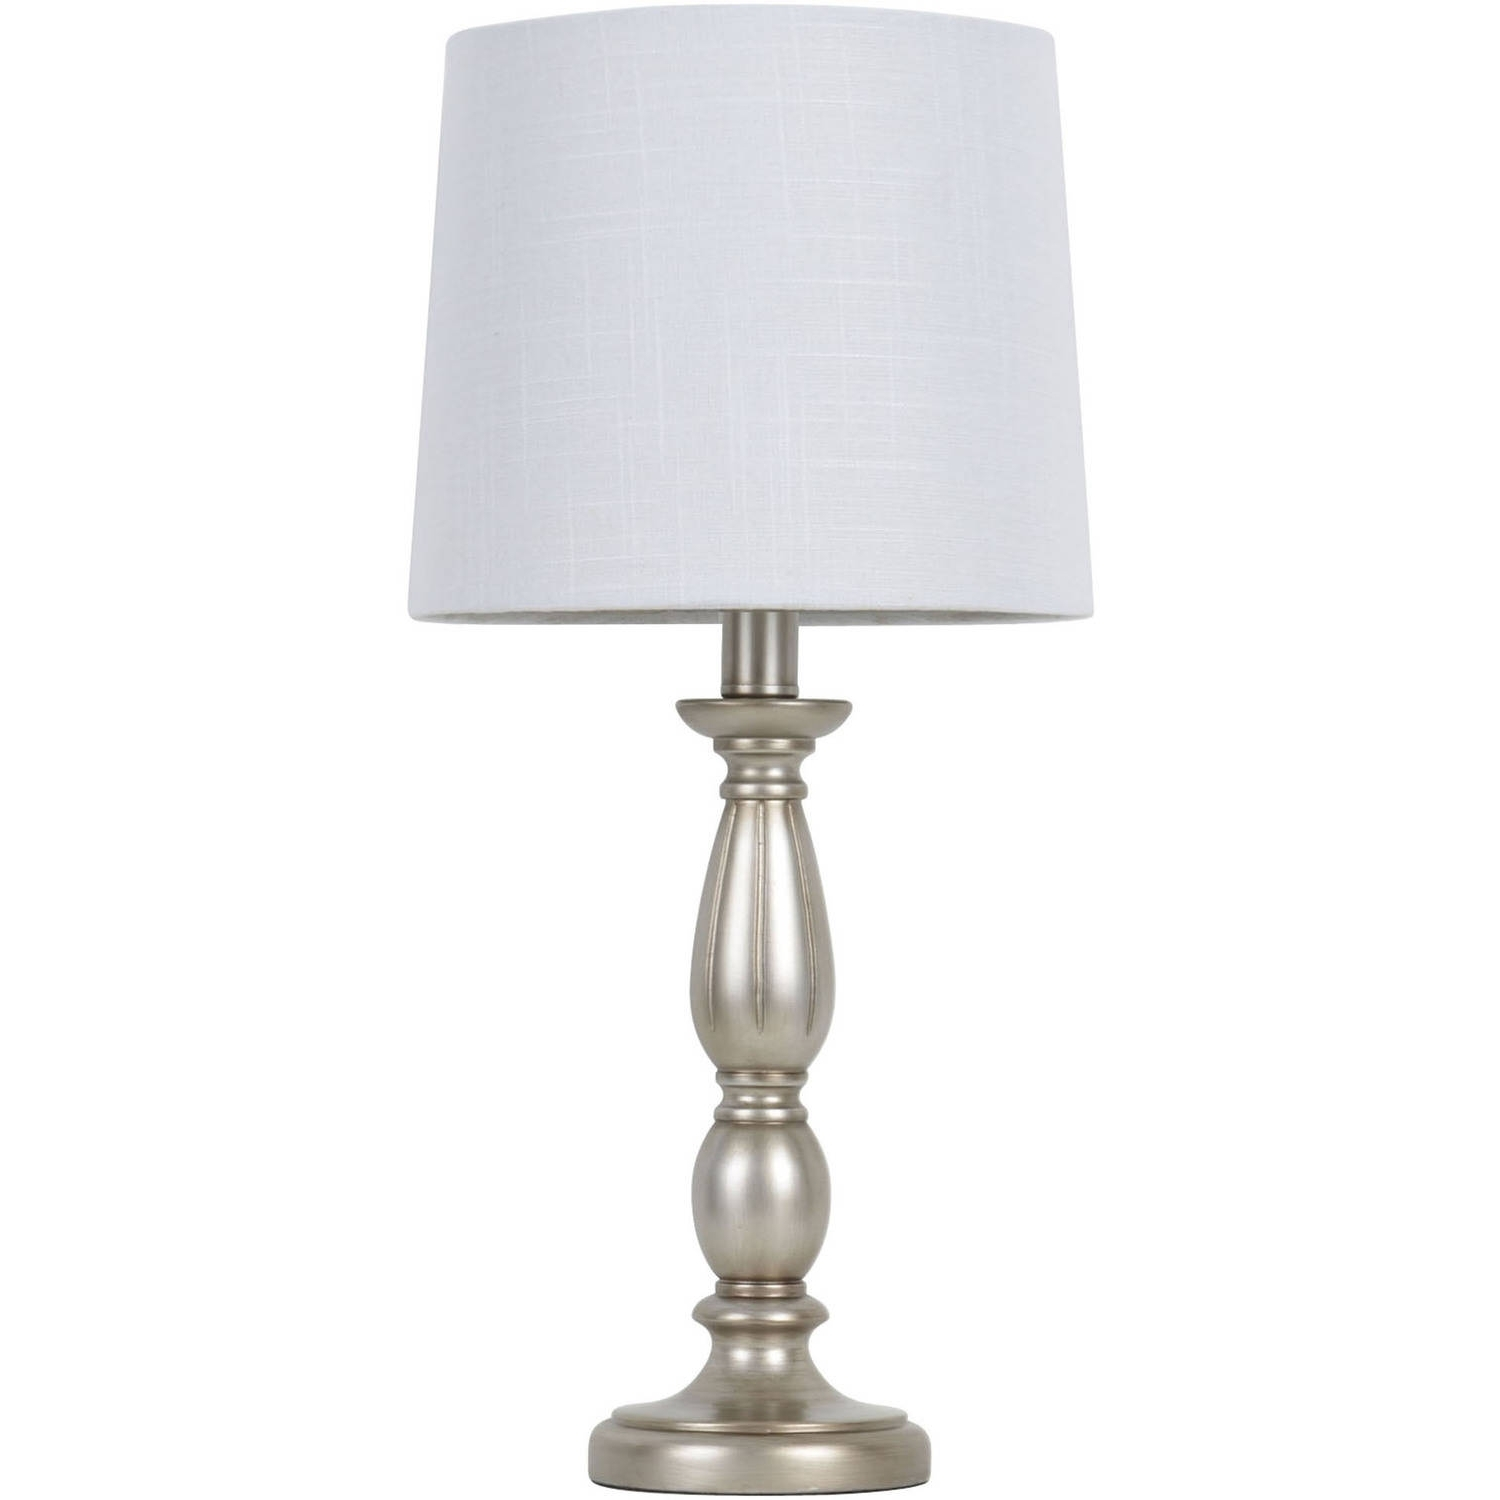 Most Up To Date Living Room Table Lamps At Home Depot For Table Lamps Tall Skinny Small Grey Bedroom Cute Desk Buffet Target (View 6 of 15)